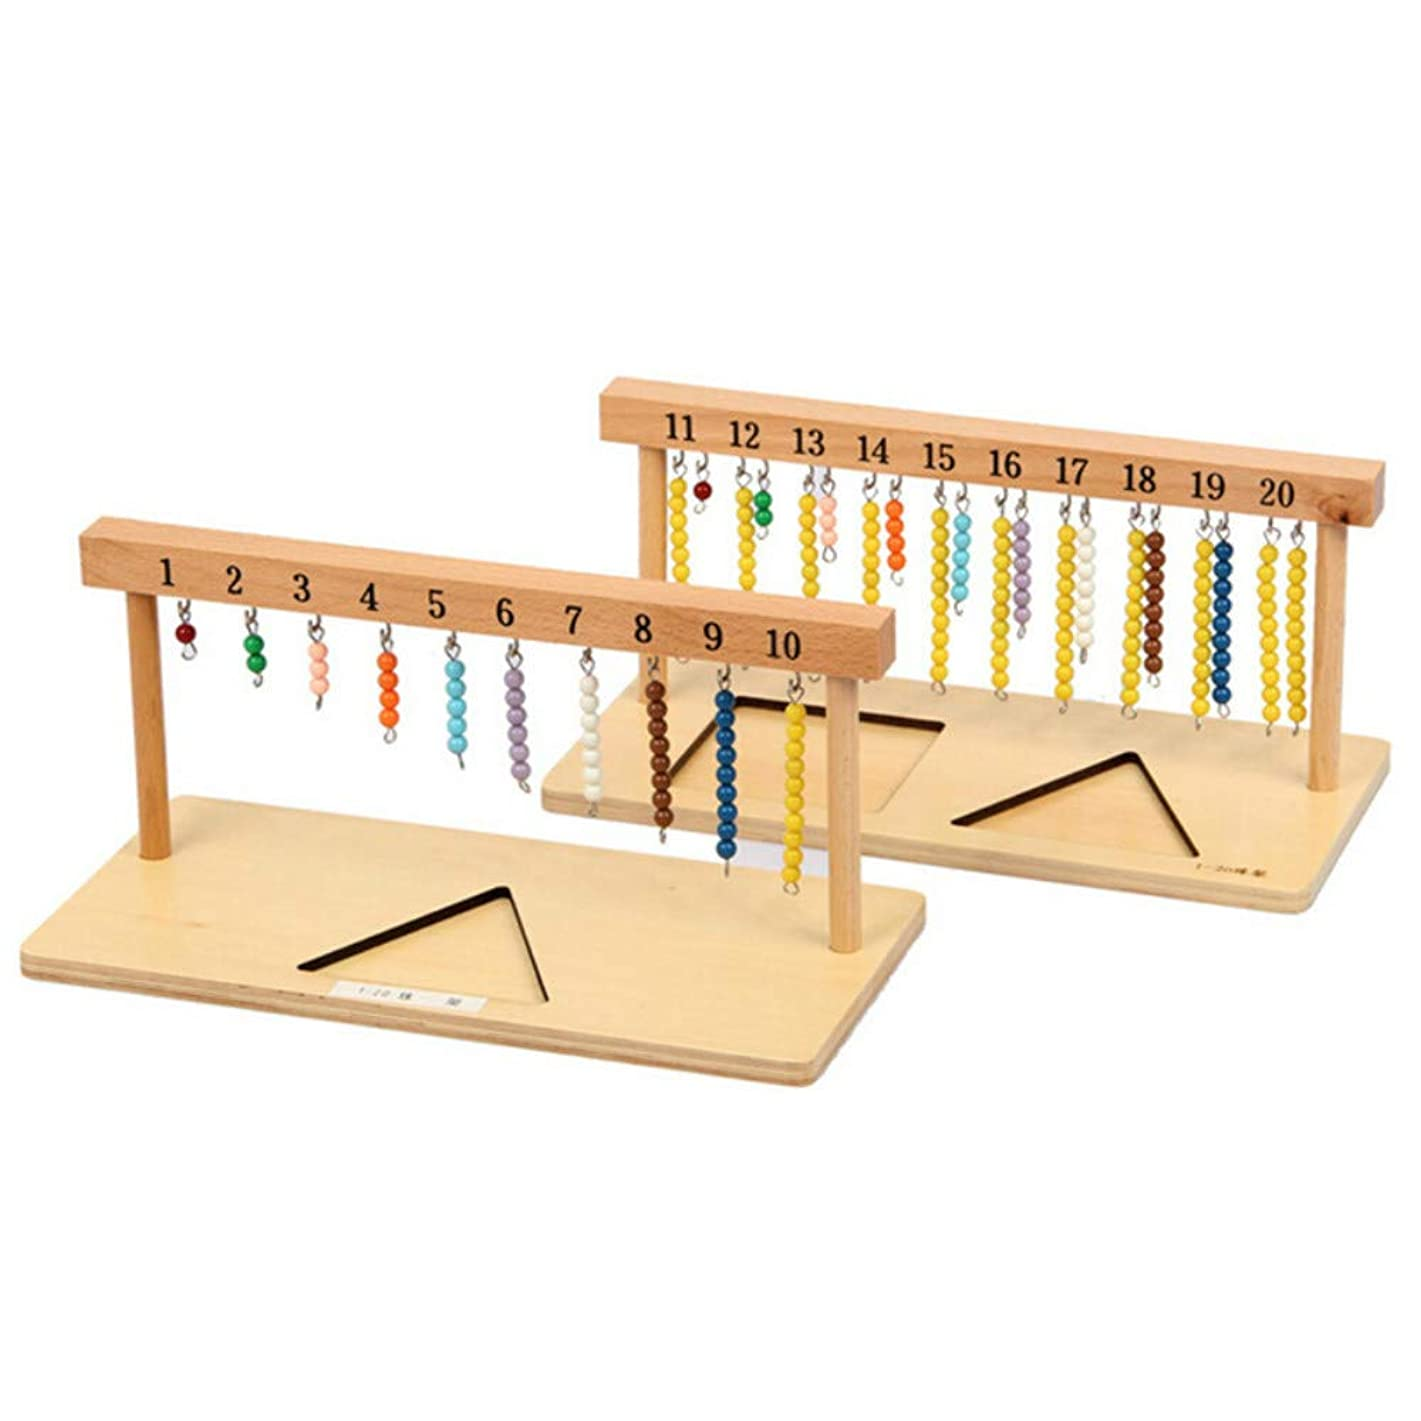 Baby Toy Montessori 1-20 Beads Hanging Frame Wood for Early Childhood Education Preschool Kids Brinquedos Juguetes Yellow